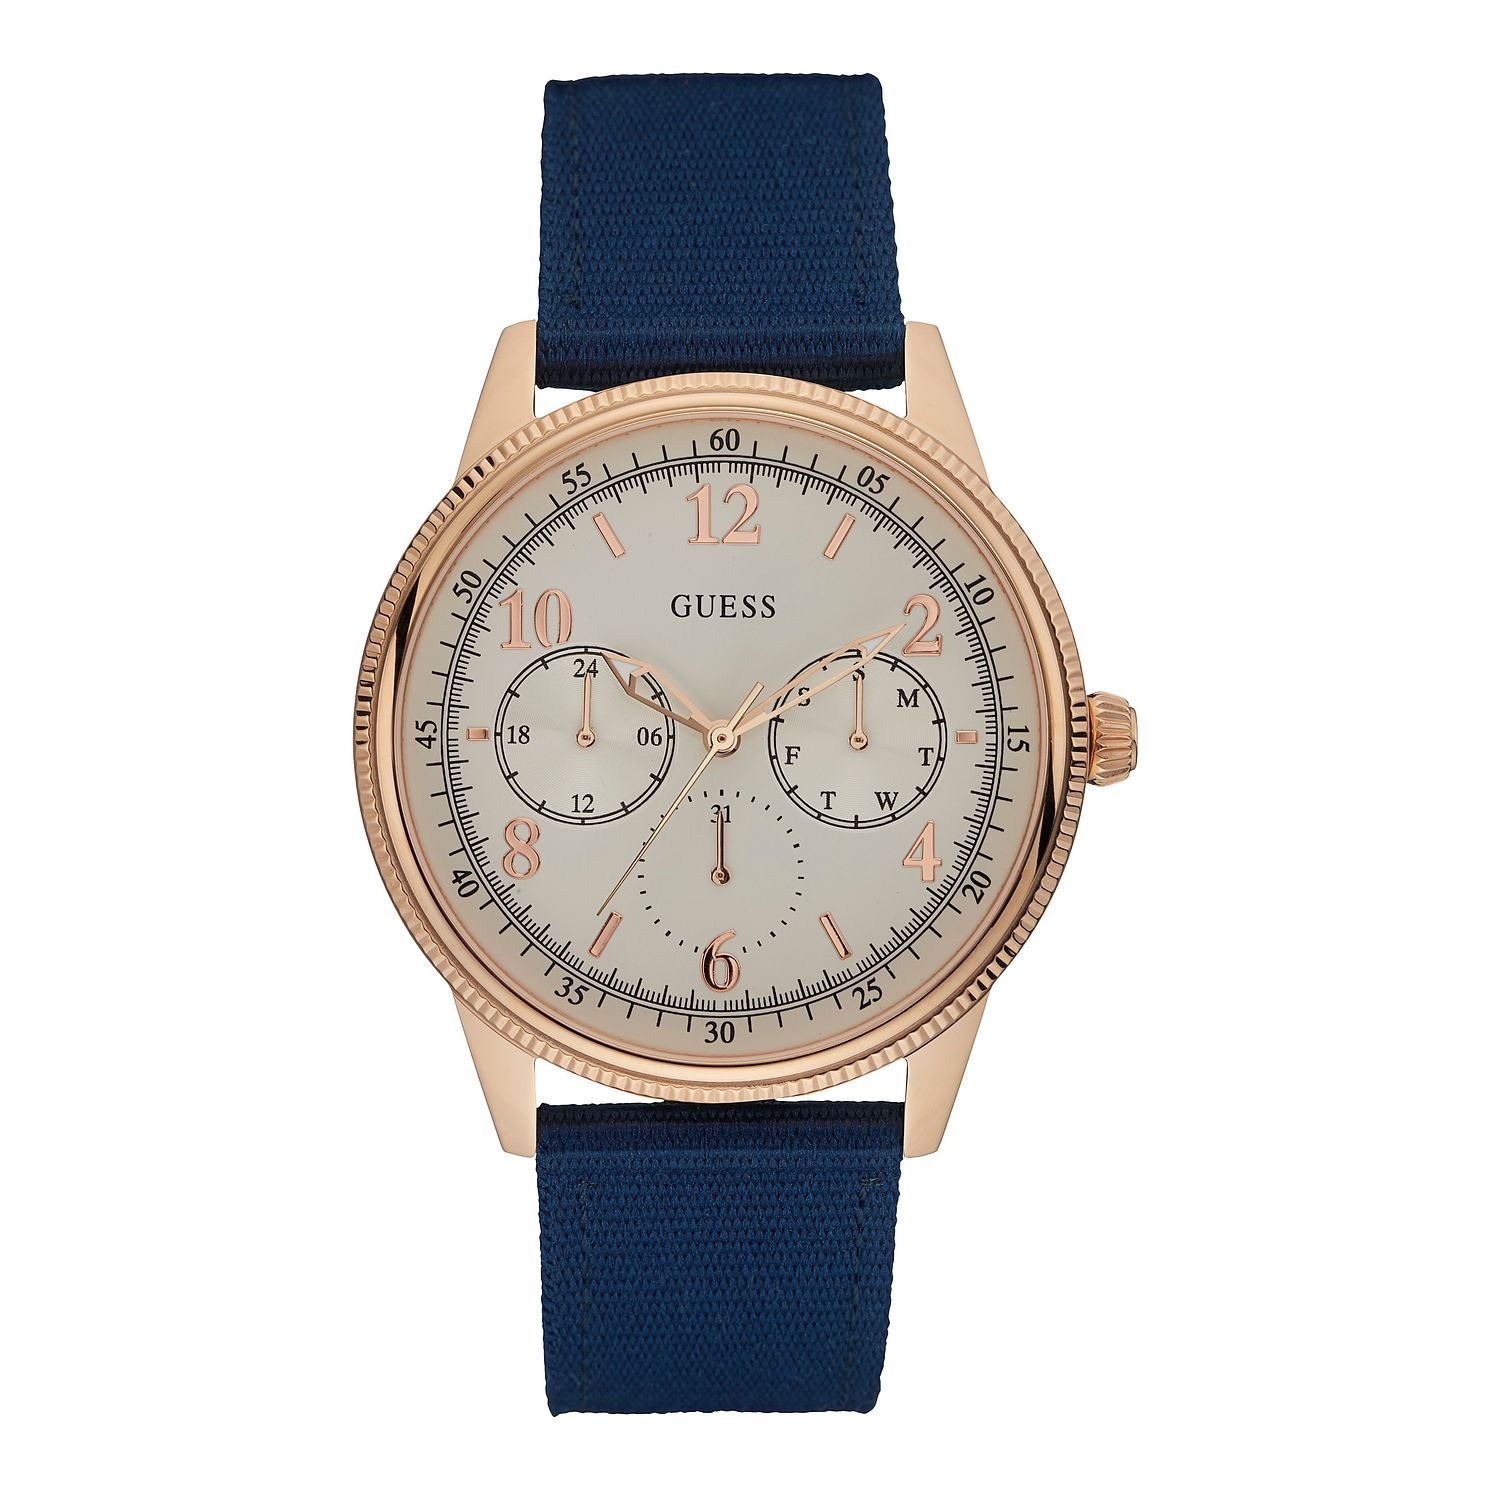 Guess Ladies' Blue Nylon Strap Watch - Product number 1111647